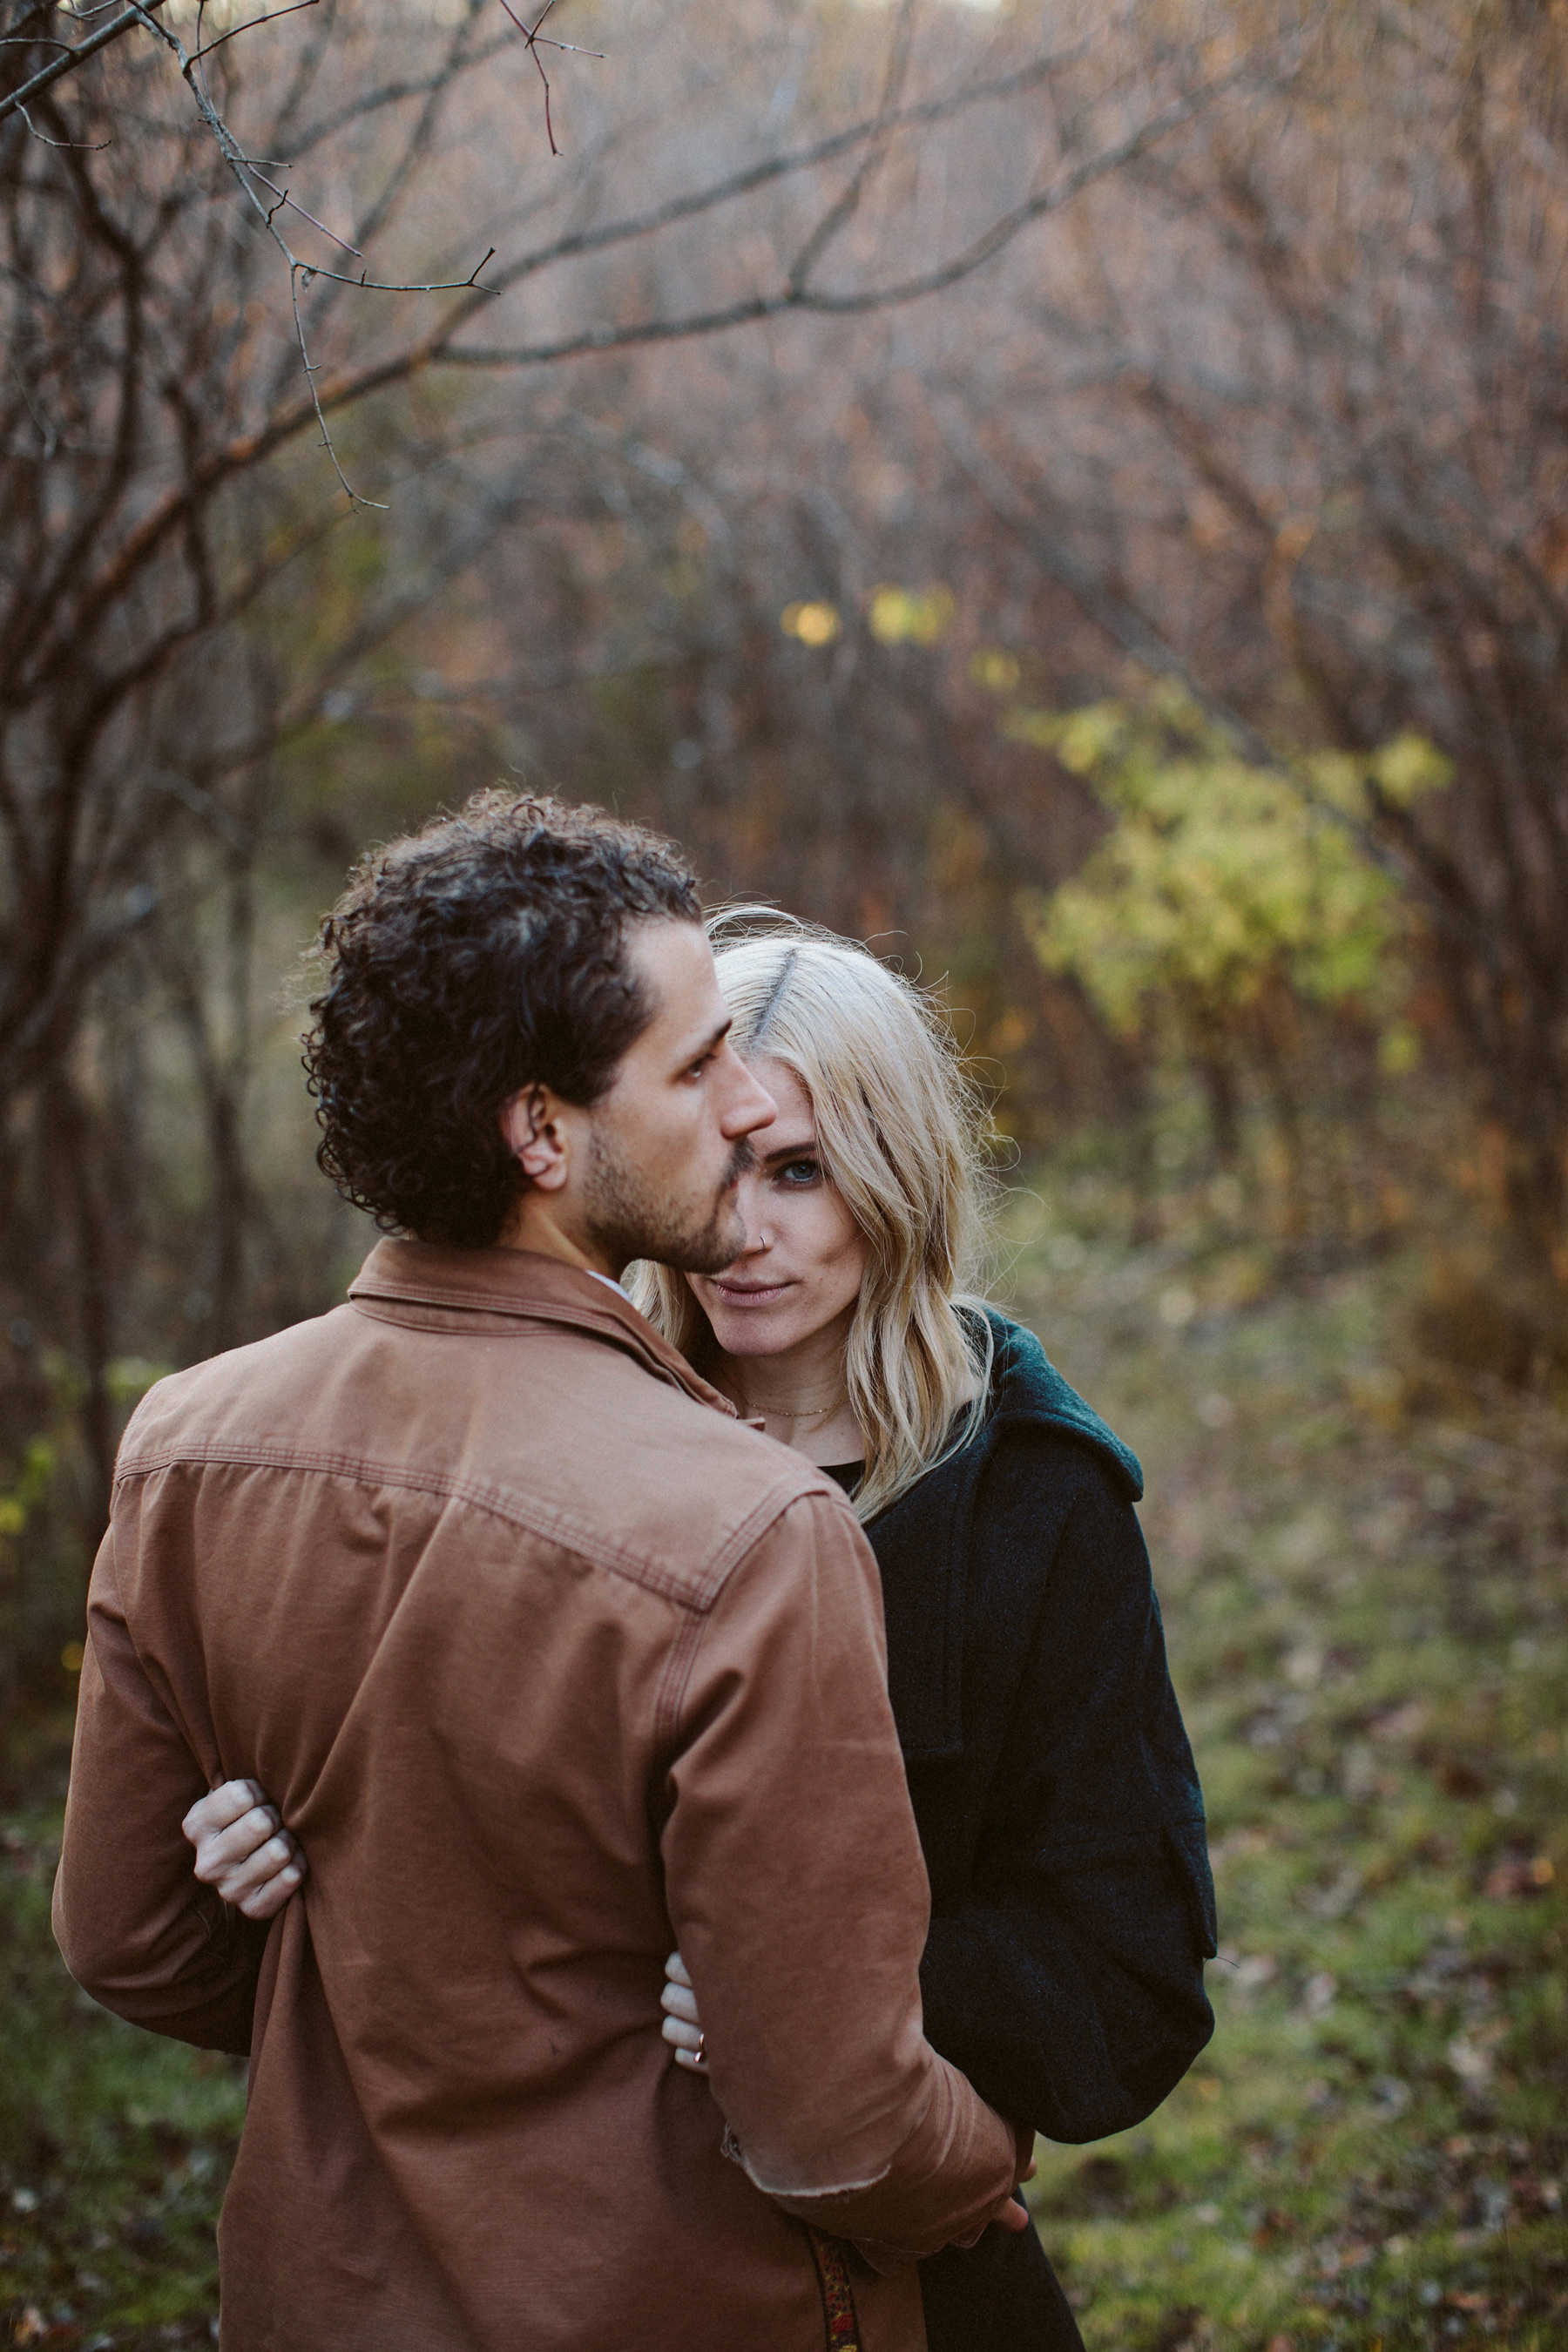 234_Weston Bend State Park Engagement Session Kansas City_Kindling Wedding Photography.JPG